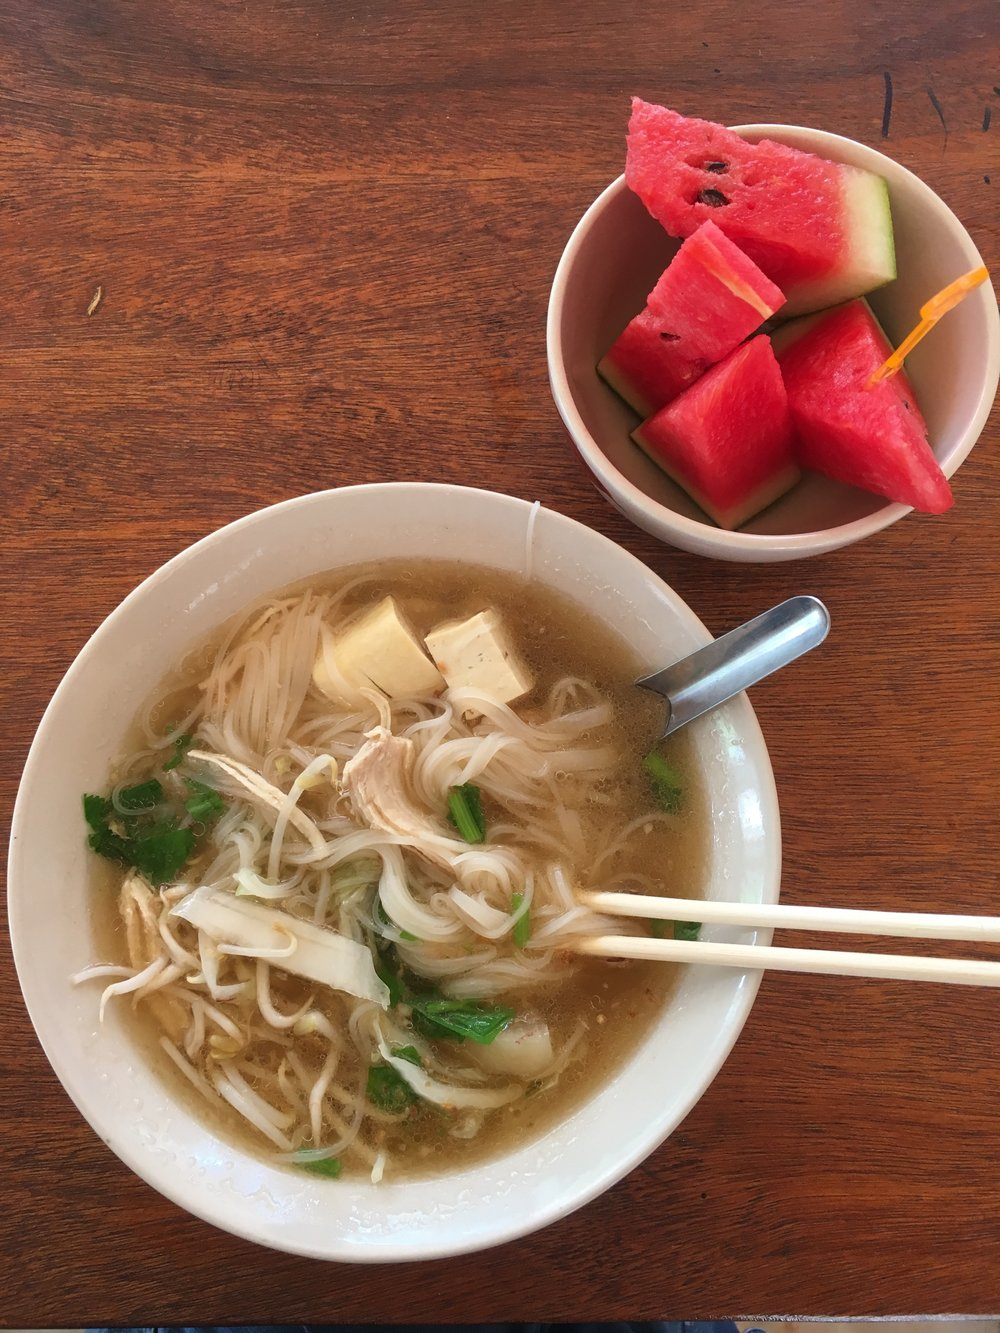 and lunch for us! Delicious homemade noodle soup.